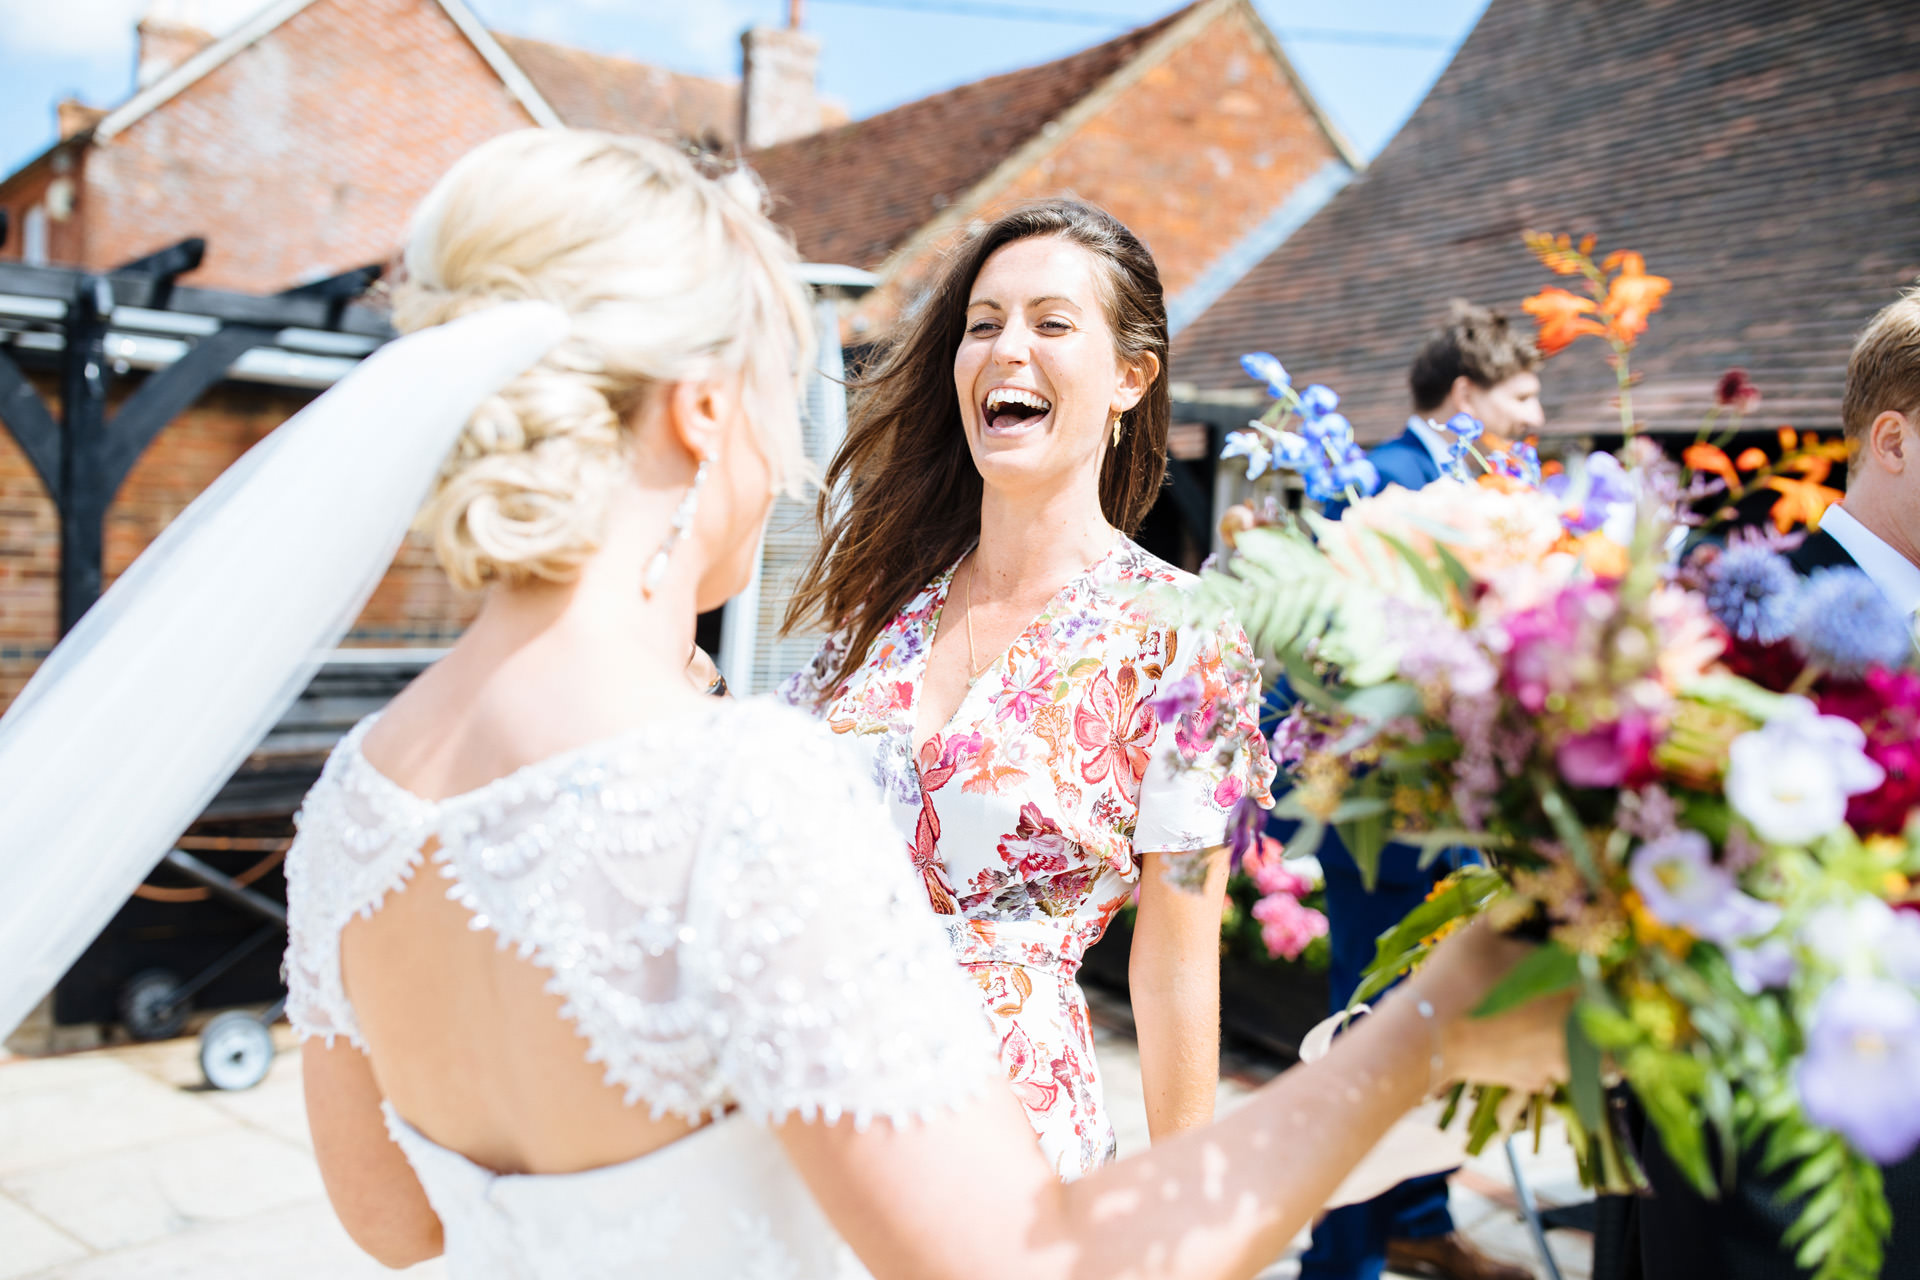 wedding guest in floral dress laughing at the bride